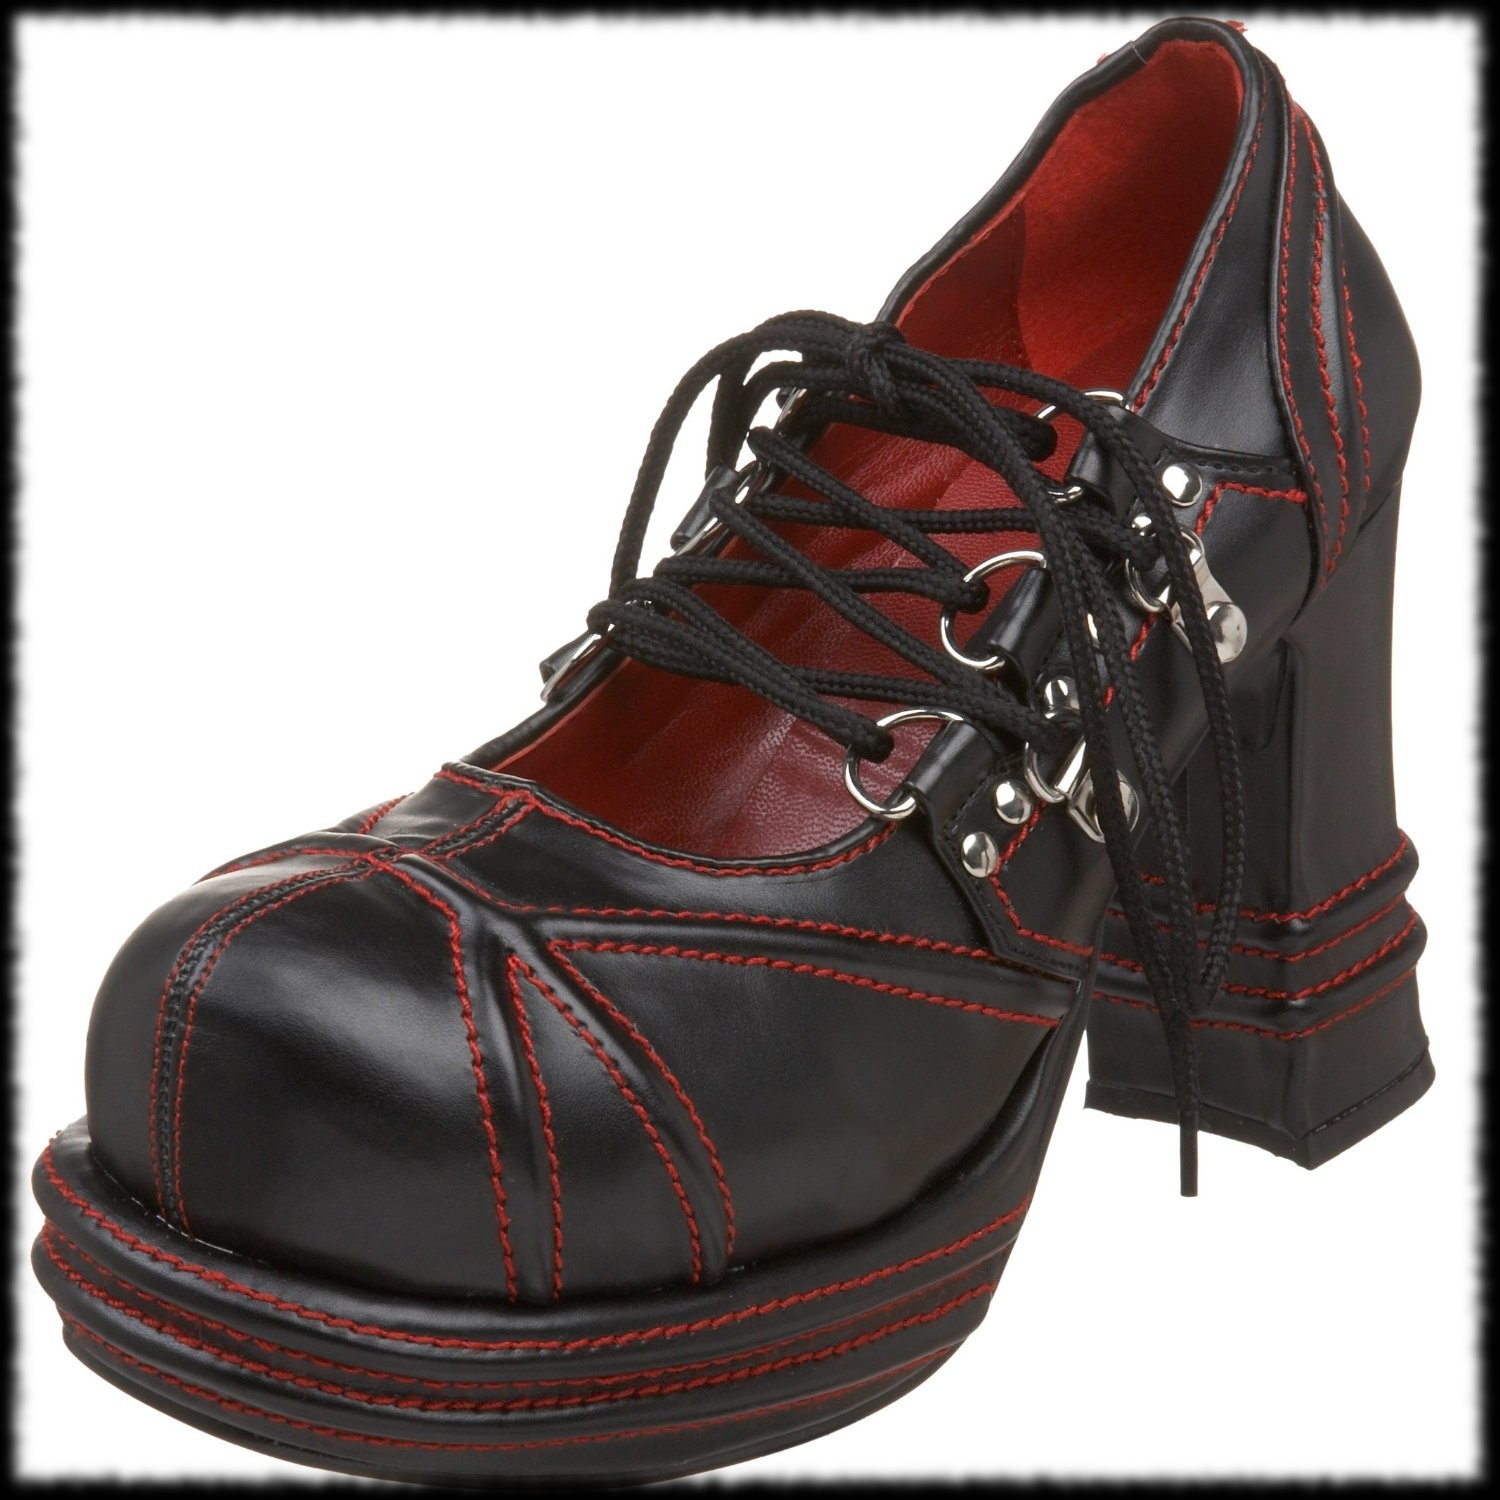 Vampire Slayer Boots Halloween Costume Accessory